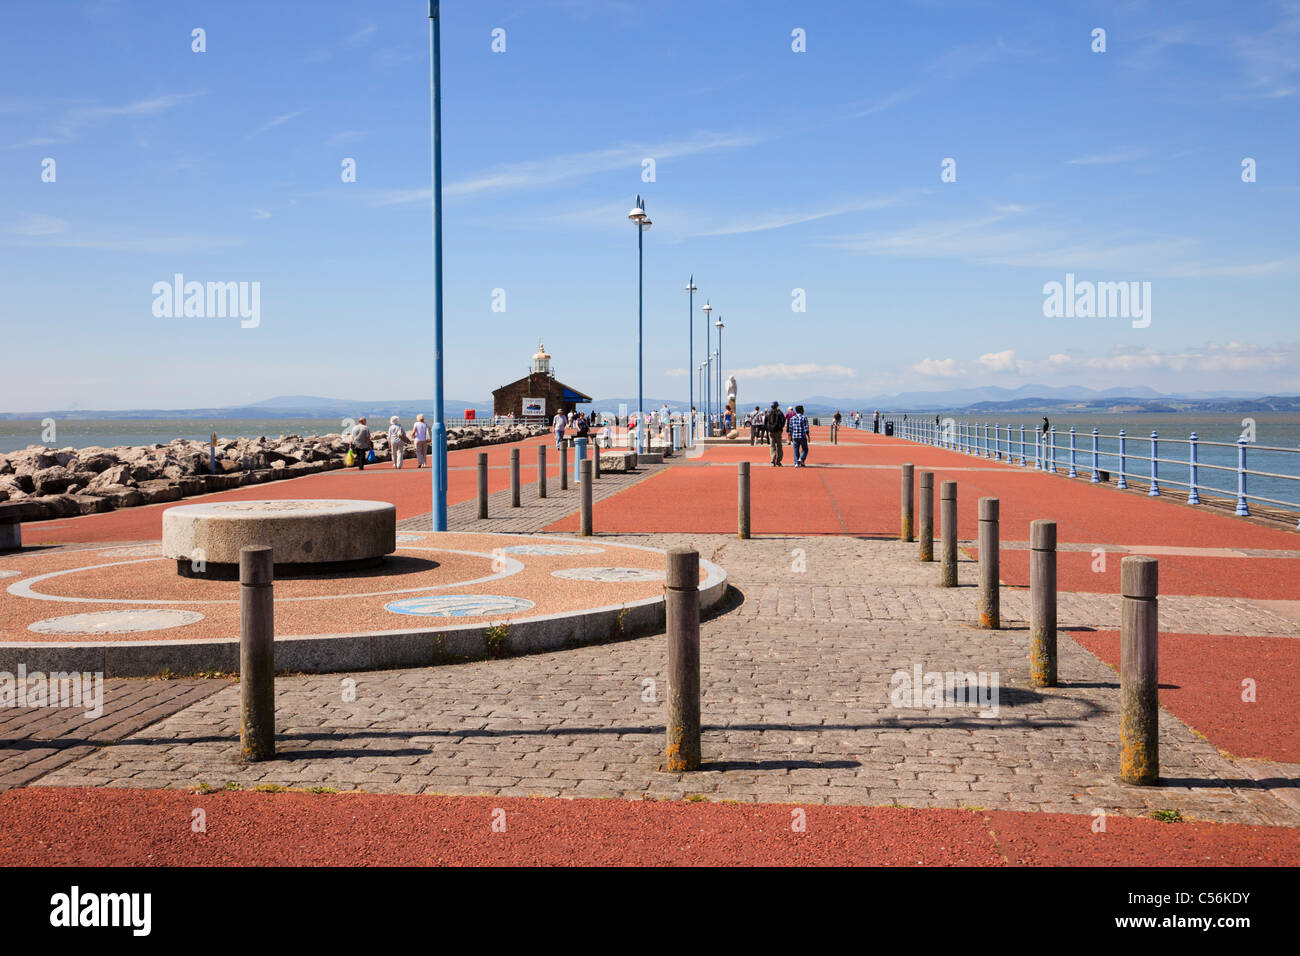 Tern Project Tongue Twisters feature and view along the stone jetty to the bay in Morecambe, Lancashire, England, - Stock Image